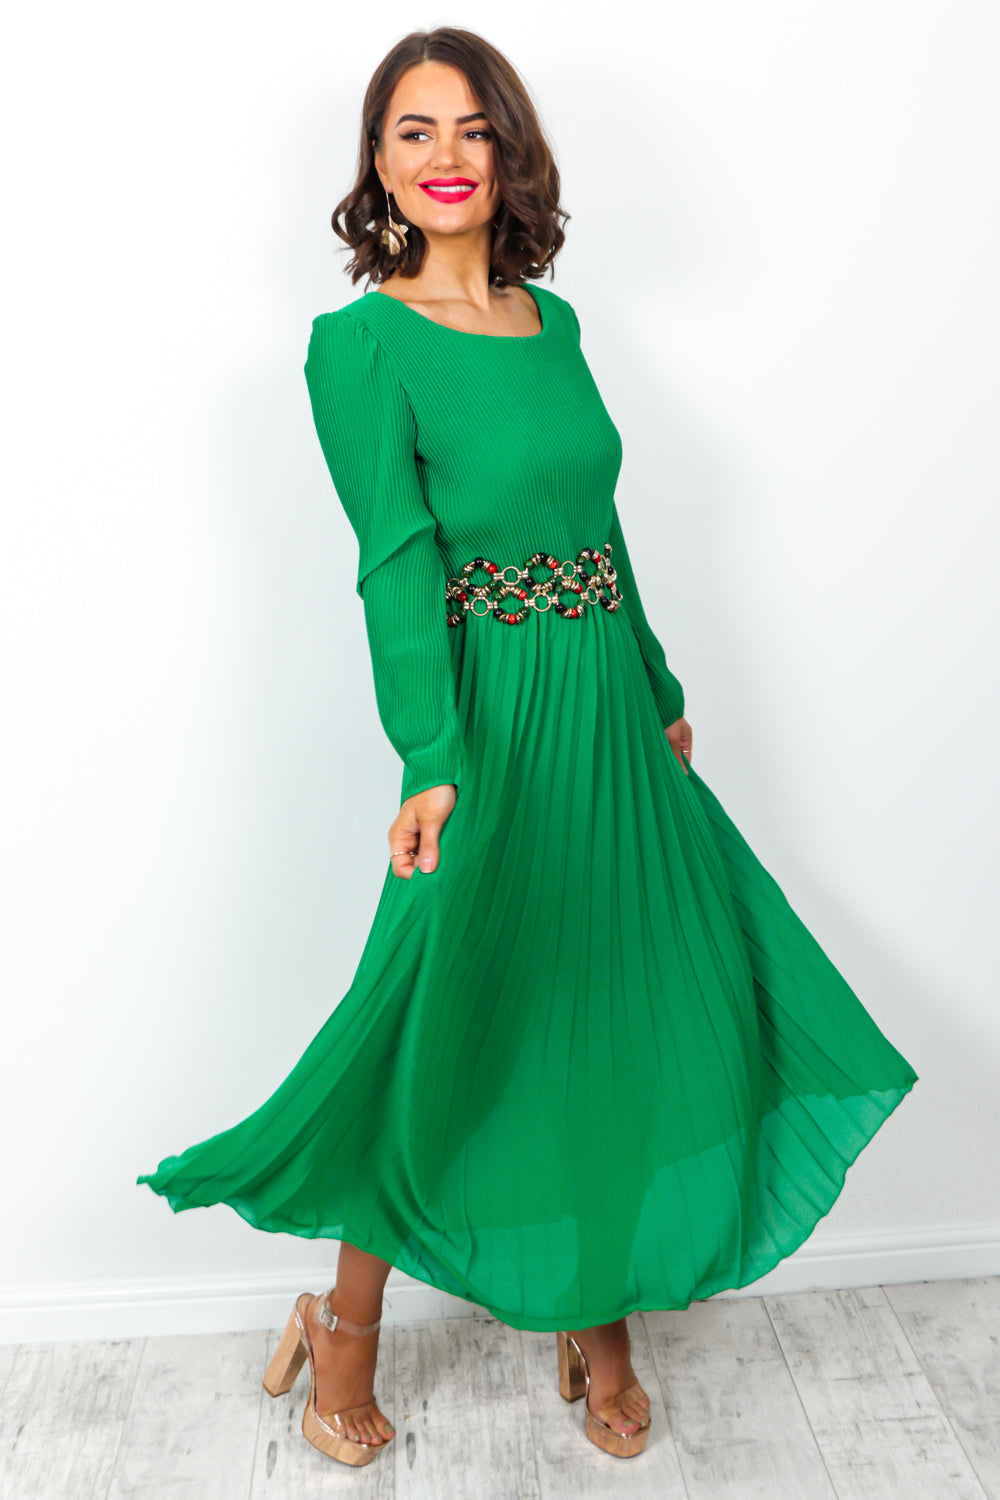 Irresistible - Dress In GREEN